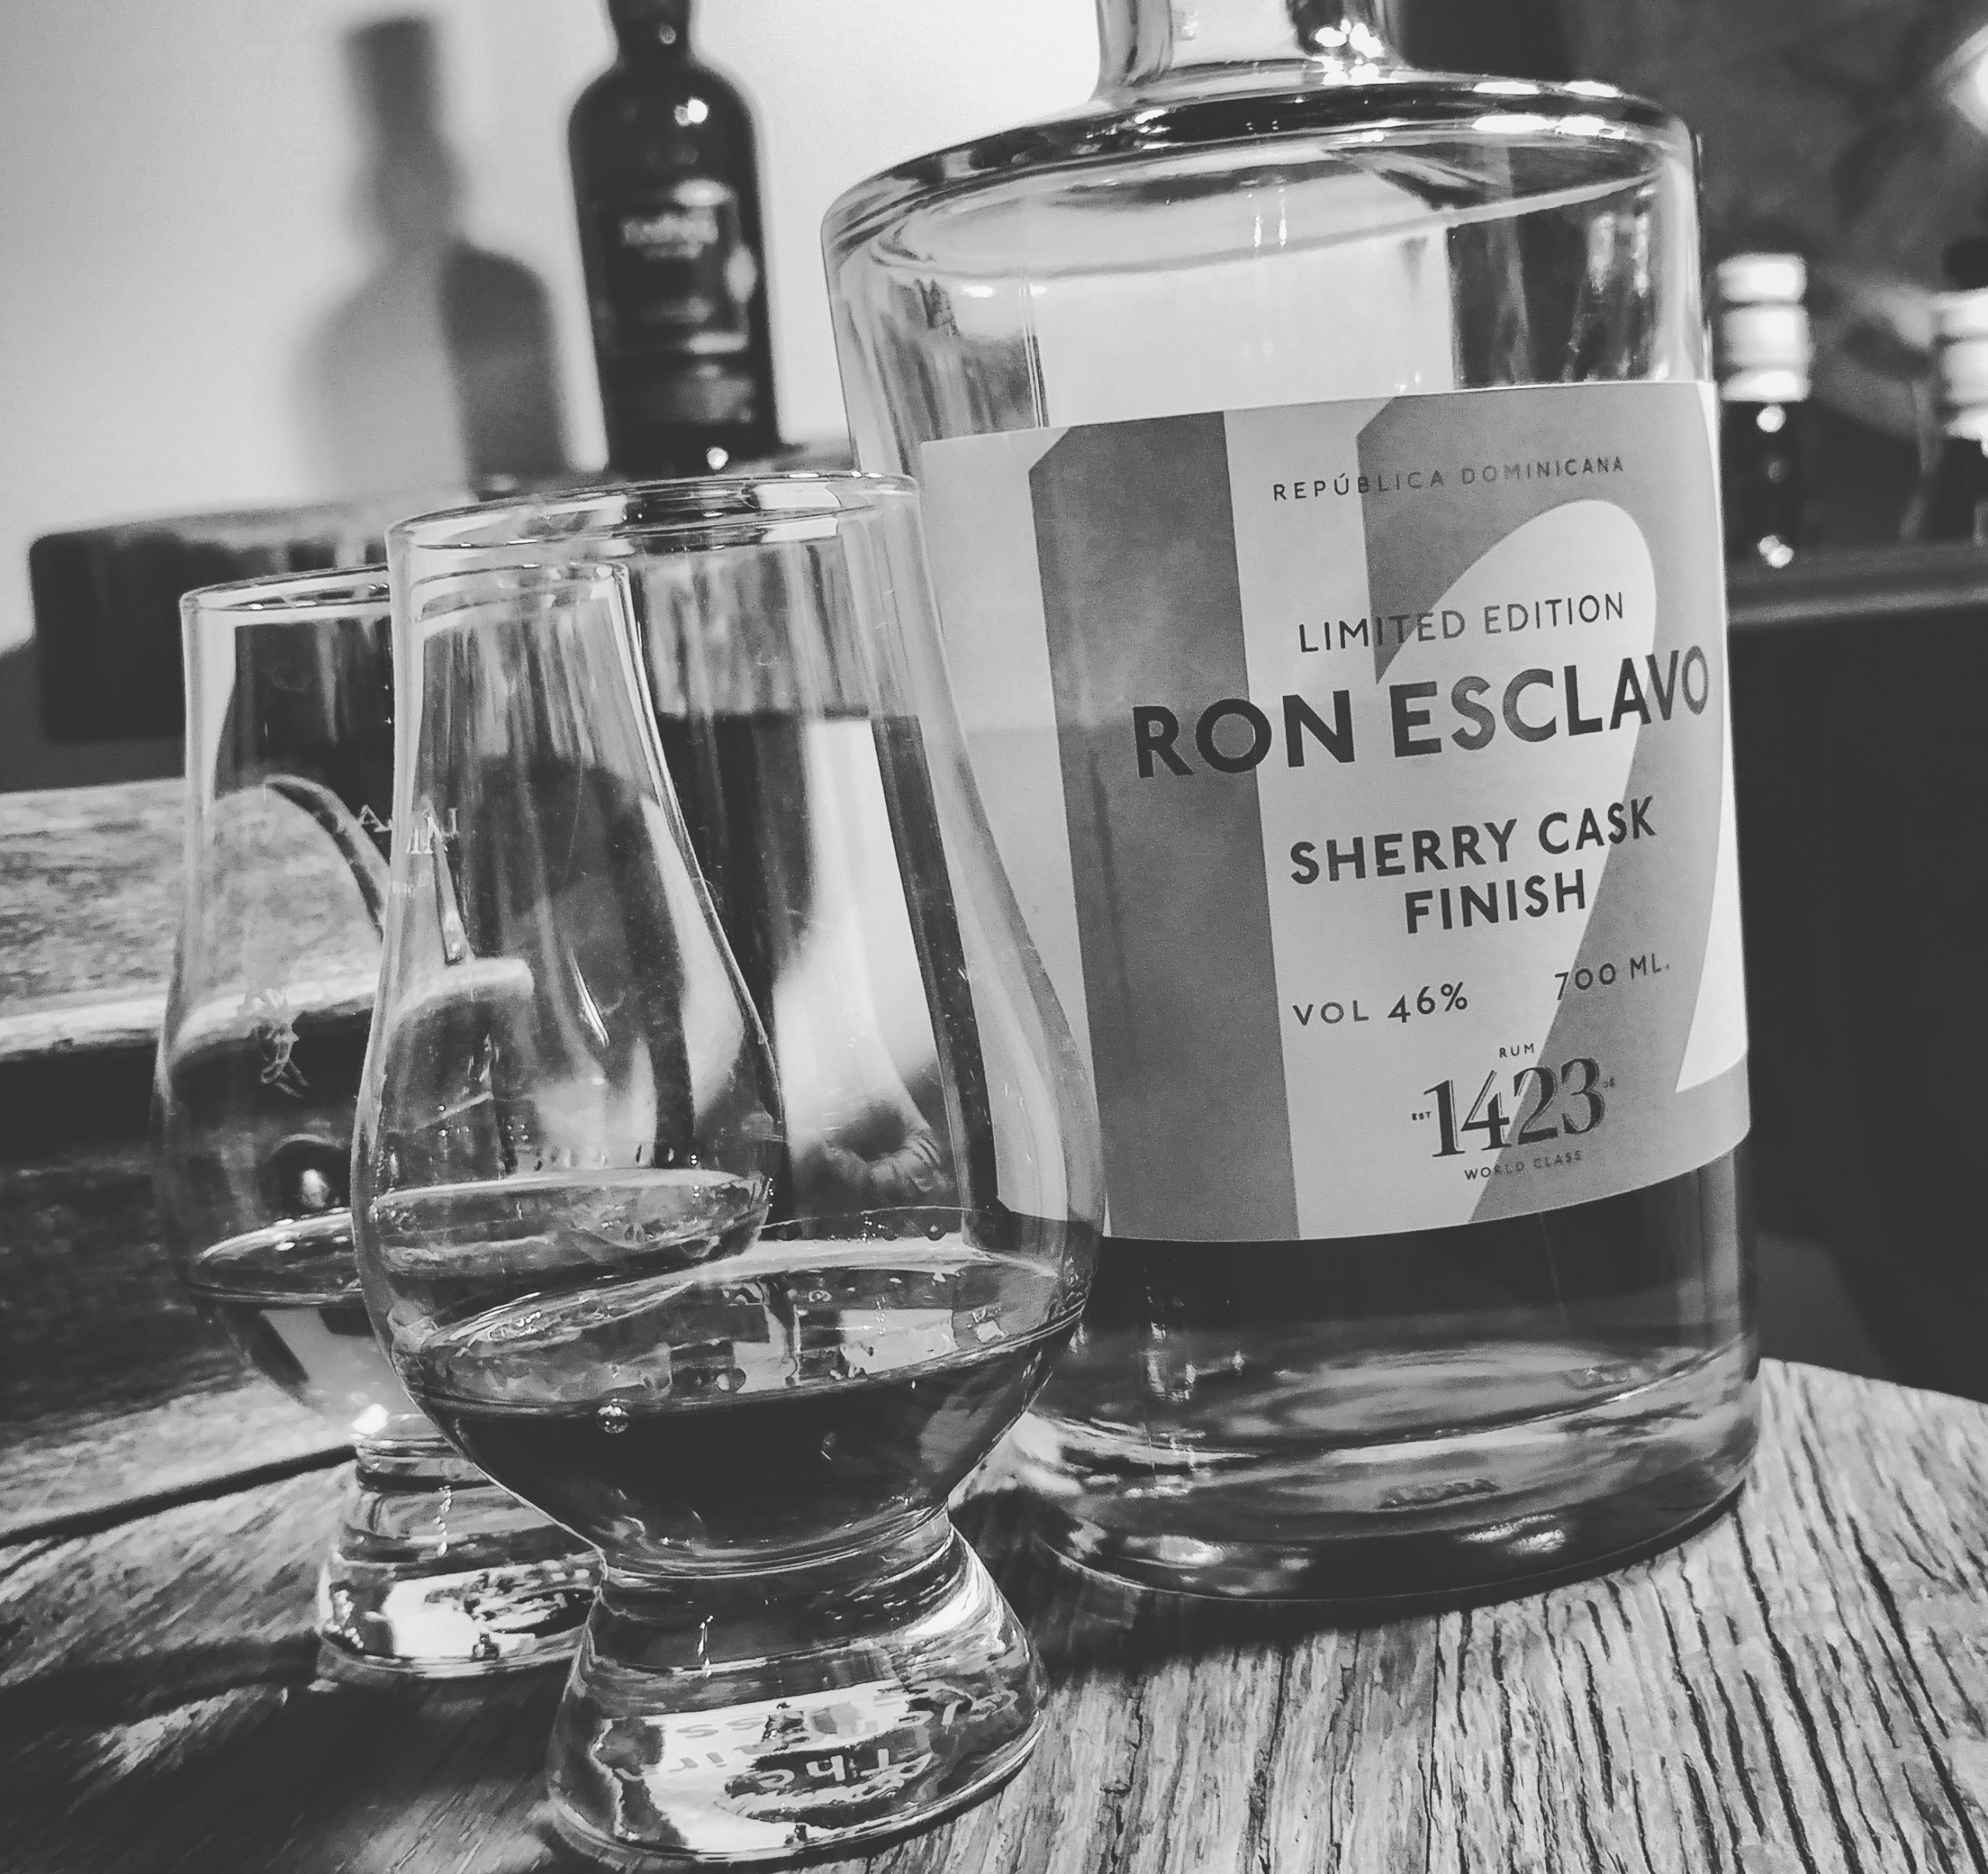 The Ron esclavo 12 sherry cask finish